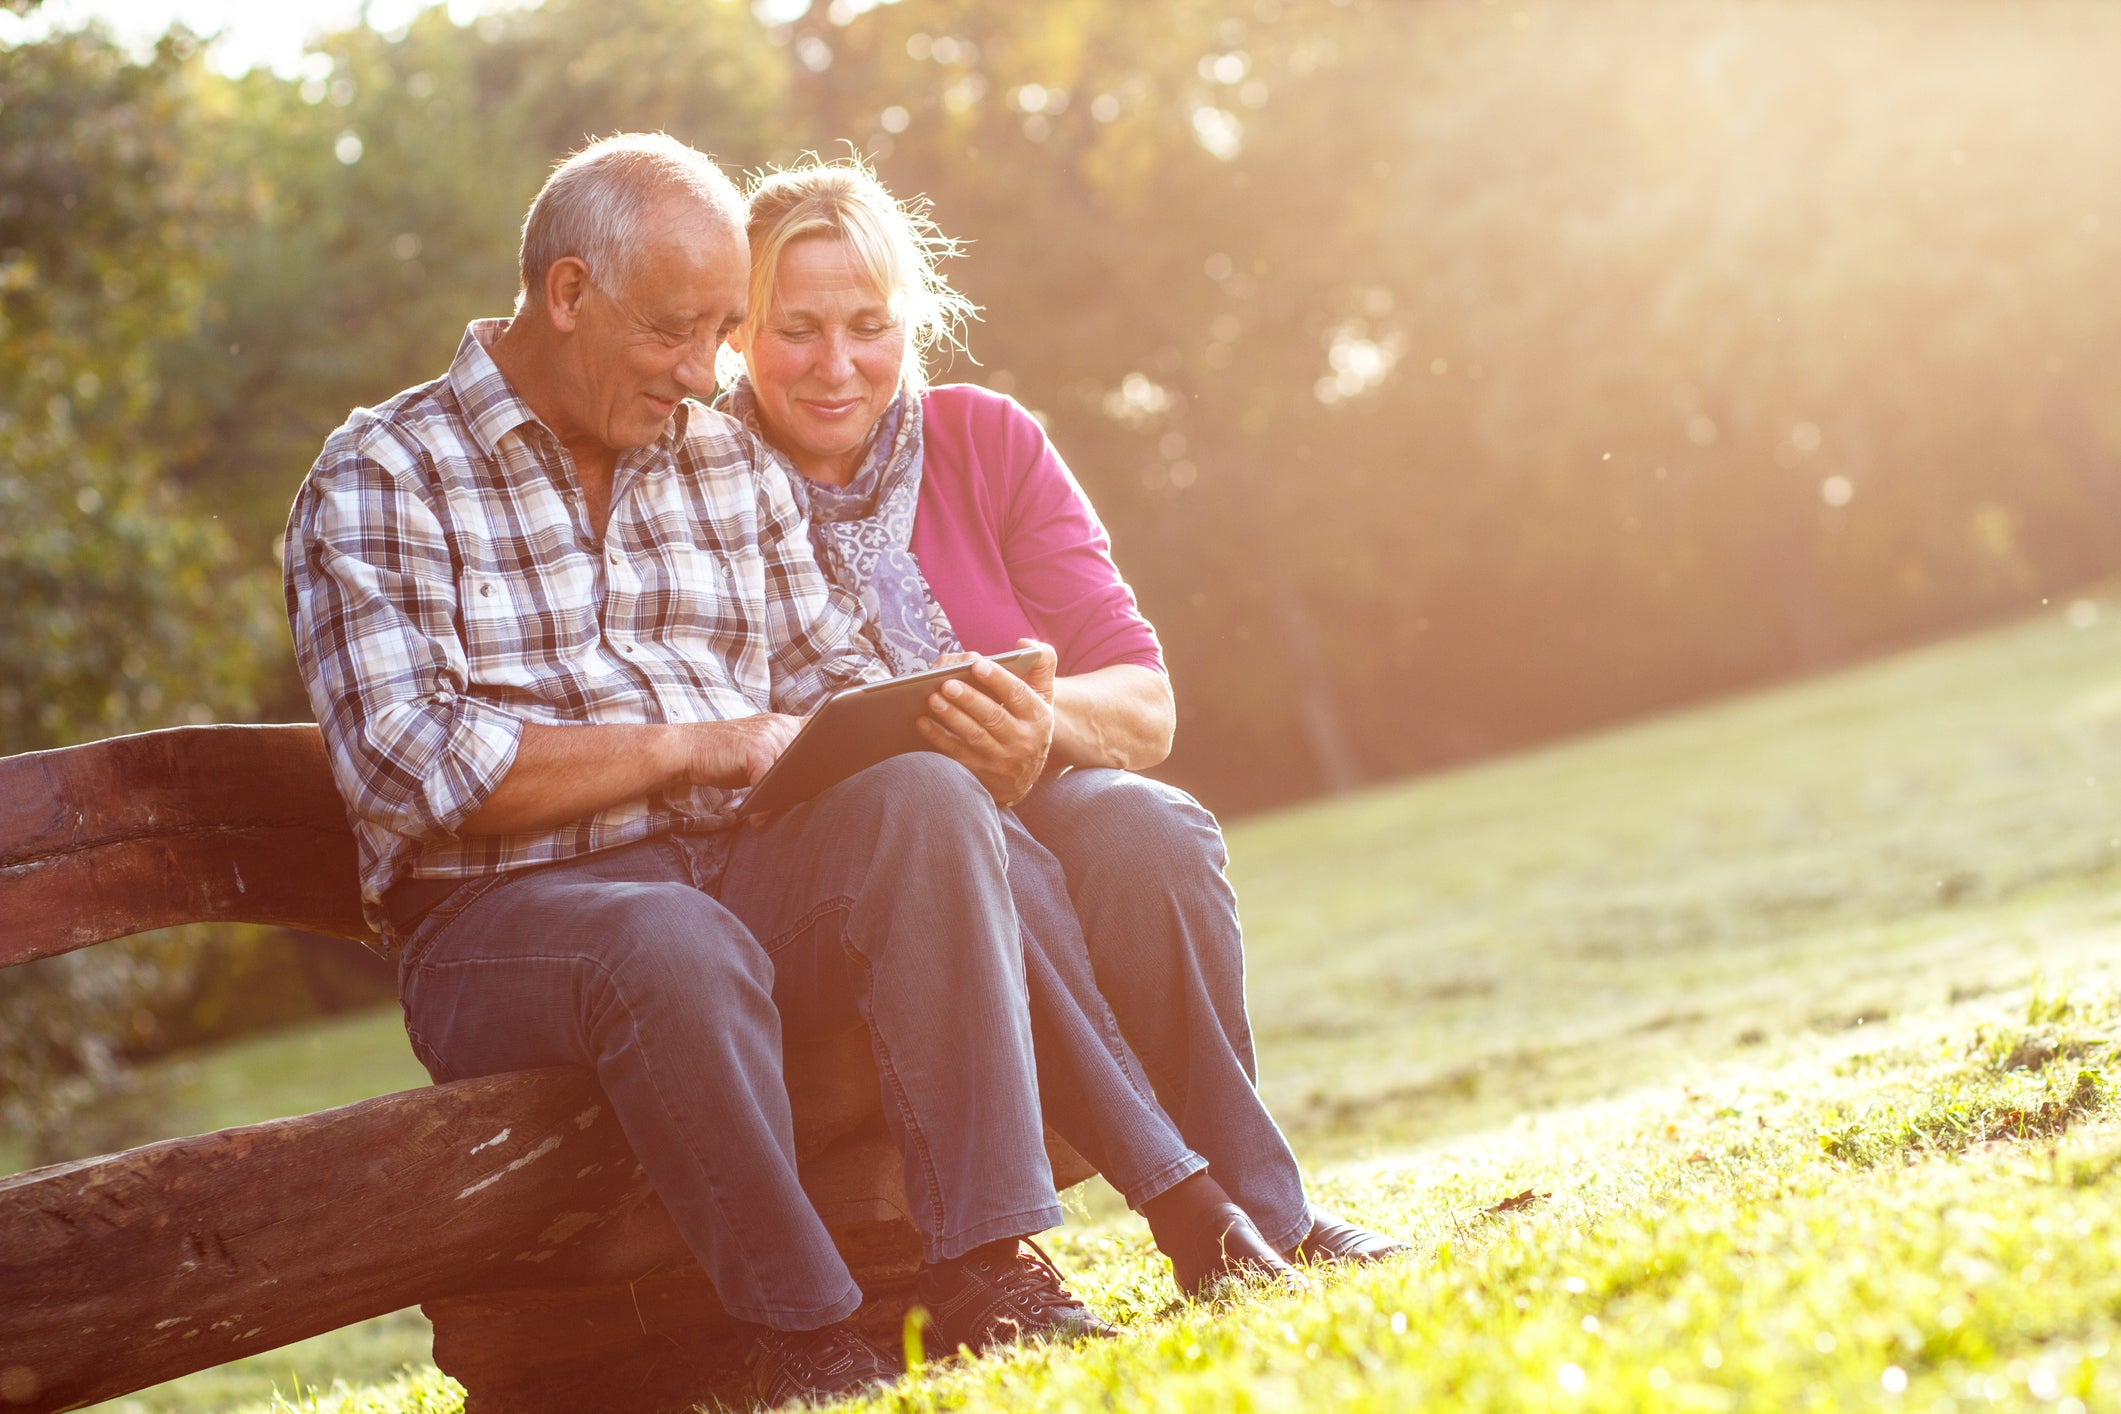 5 Money Moves Baby Boomers Need to Make | The Motley Fool